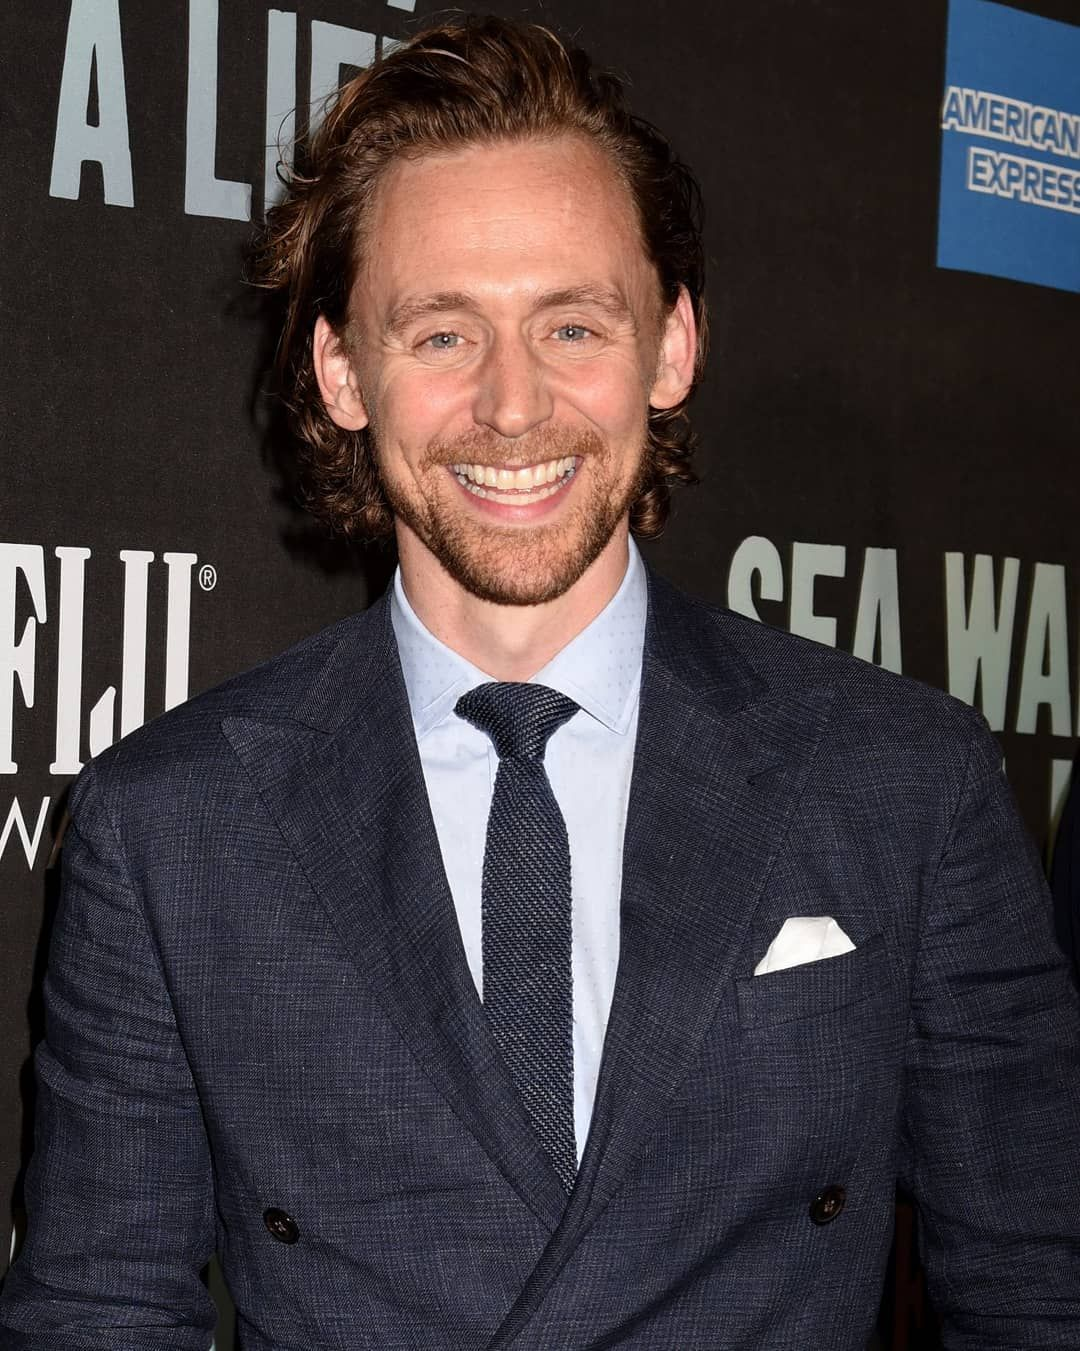 Hiddlesgirl ☀ on | Tom hiddleston, Beautiful person, Tom ...